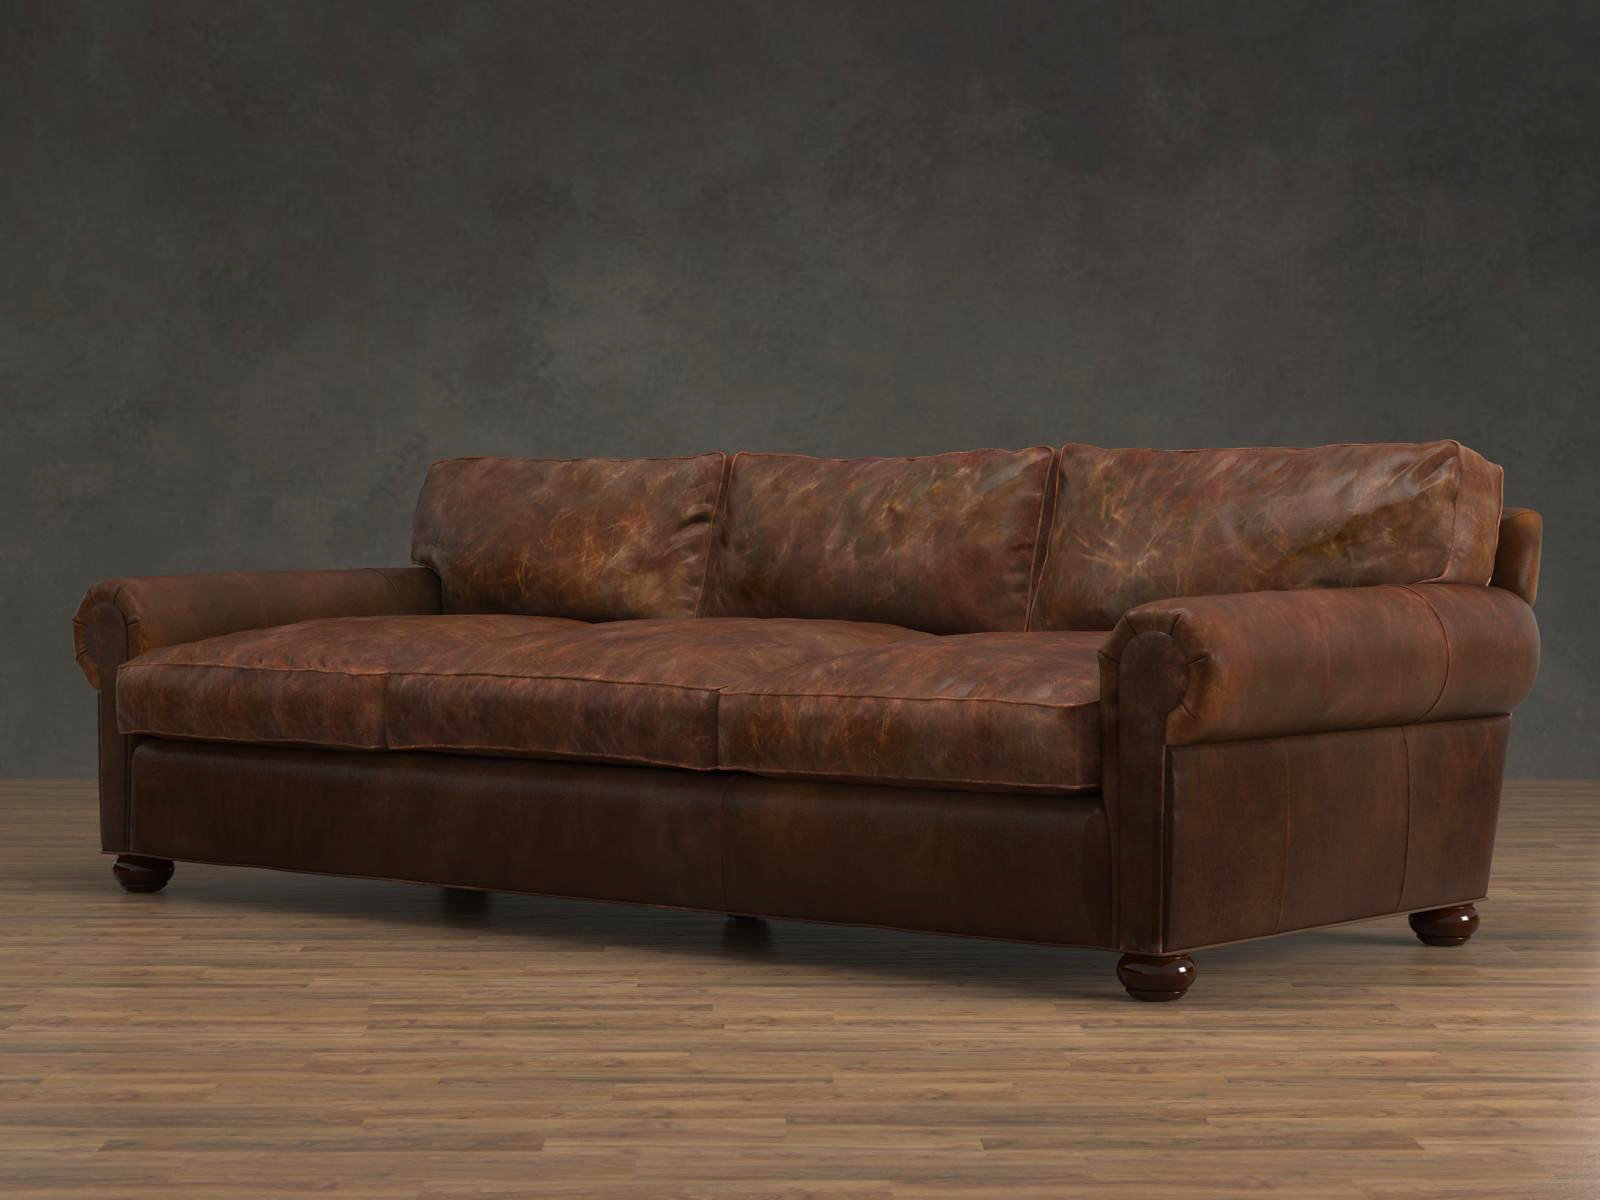 tindall 96 leather sofa futons bed weymouth quot lancaster 3d model restoration hardware